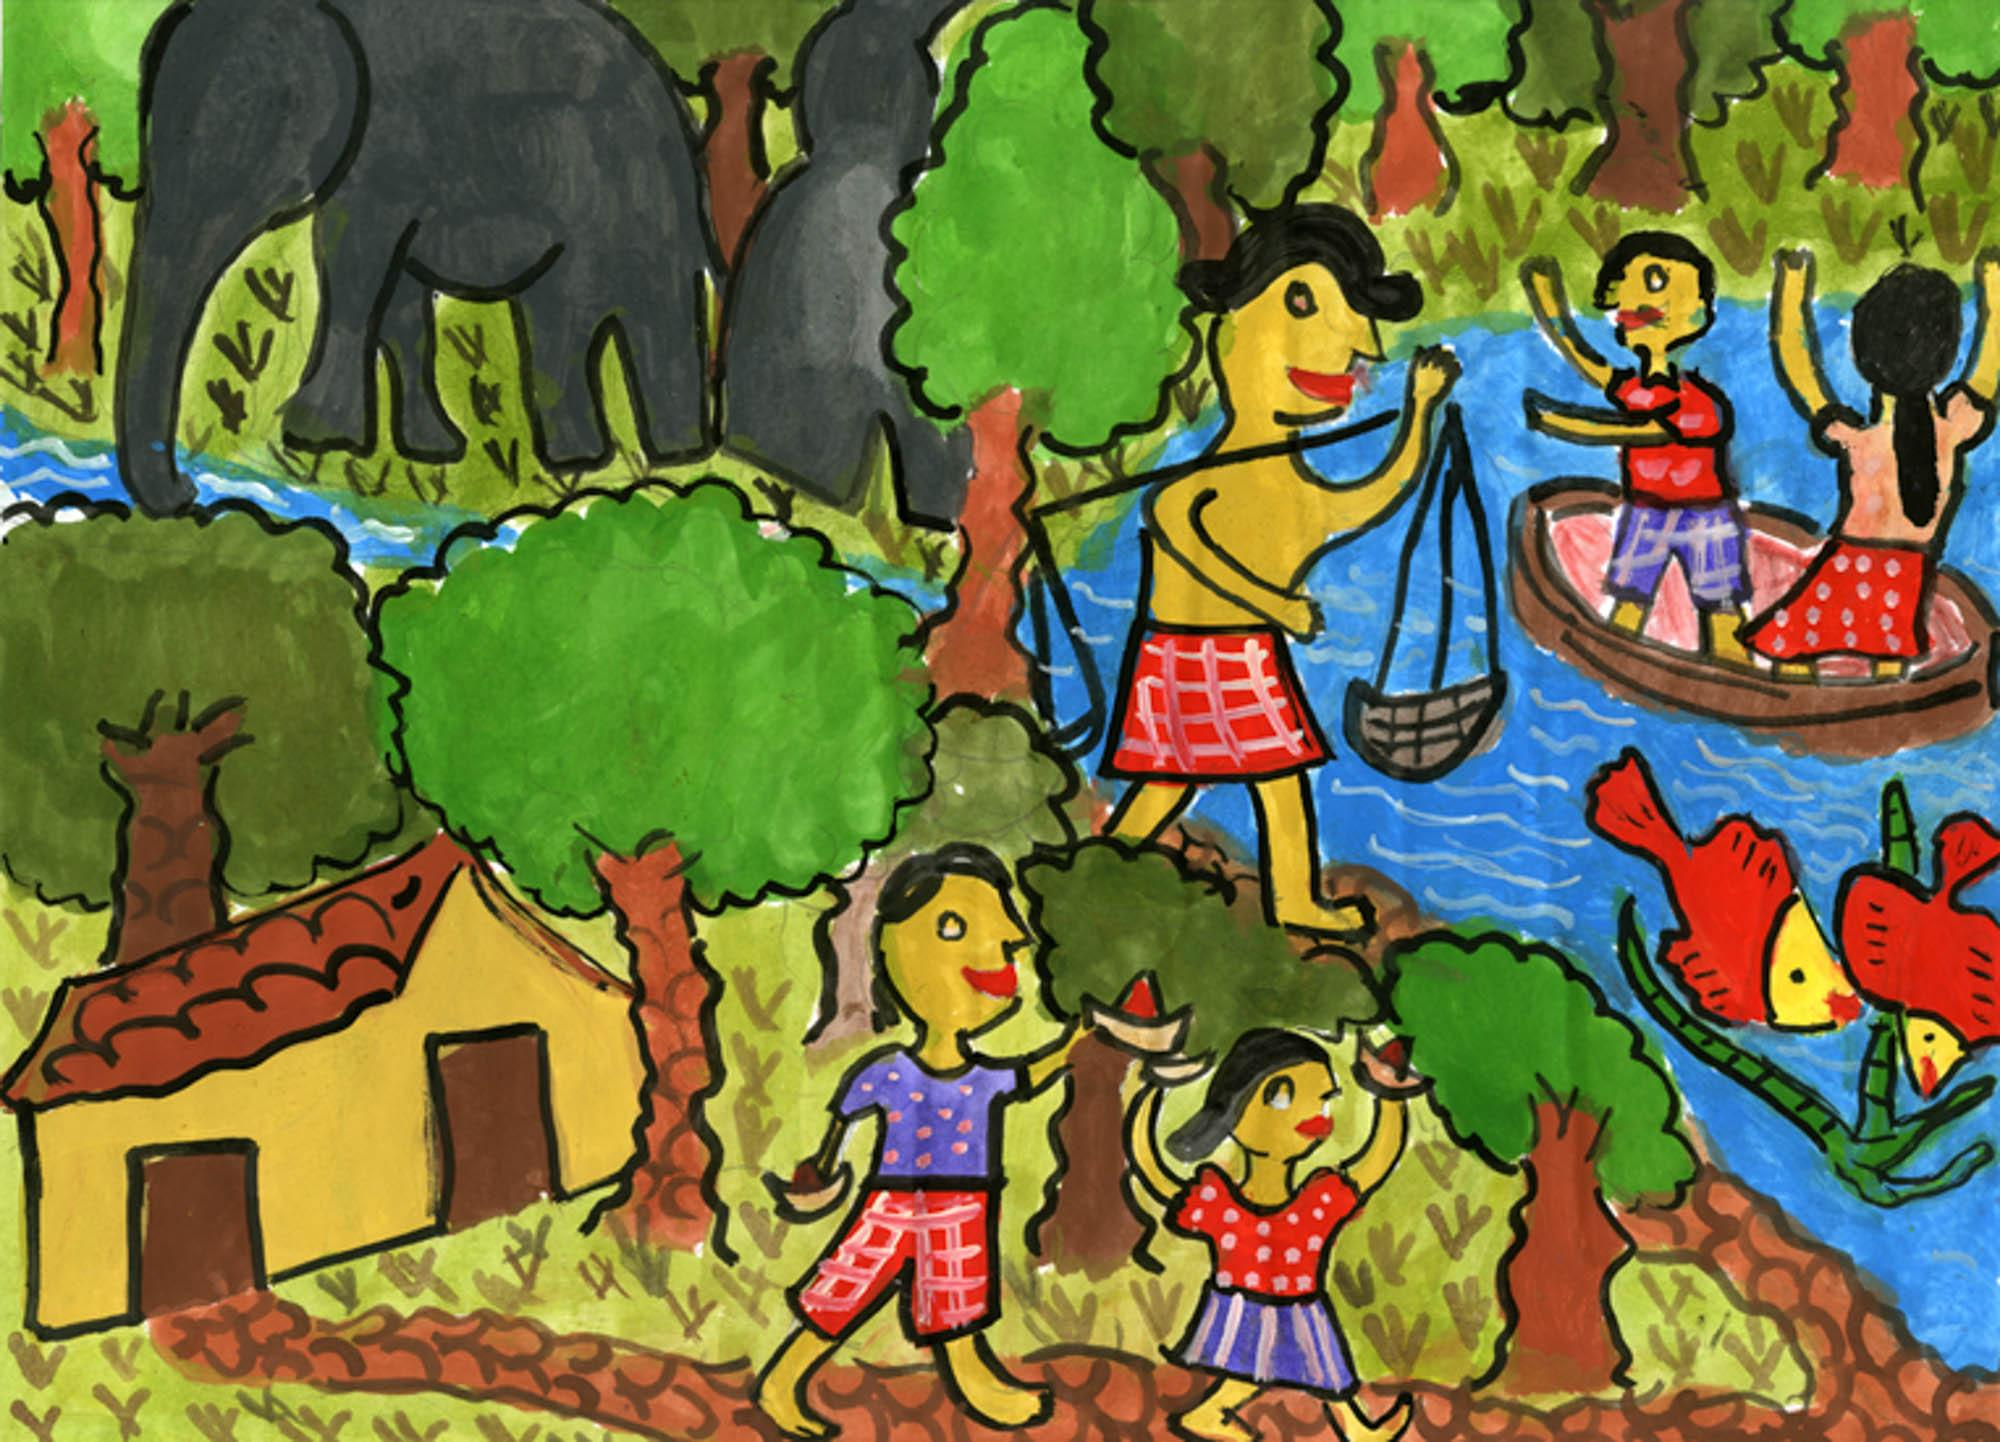 Water World, Yowuni Praveena Siriwardana, age 7 Gampaha, Sri Lanka  (Submitted Independently), 2013 River of Words Finalist